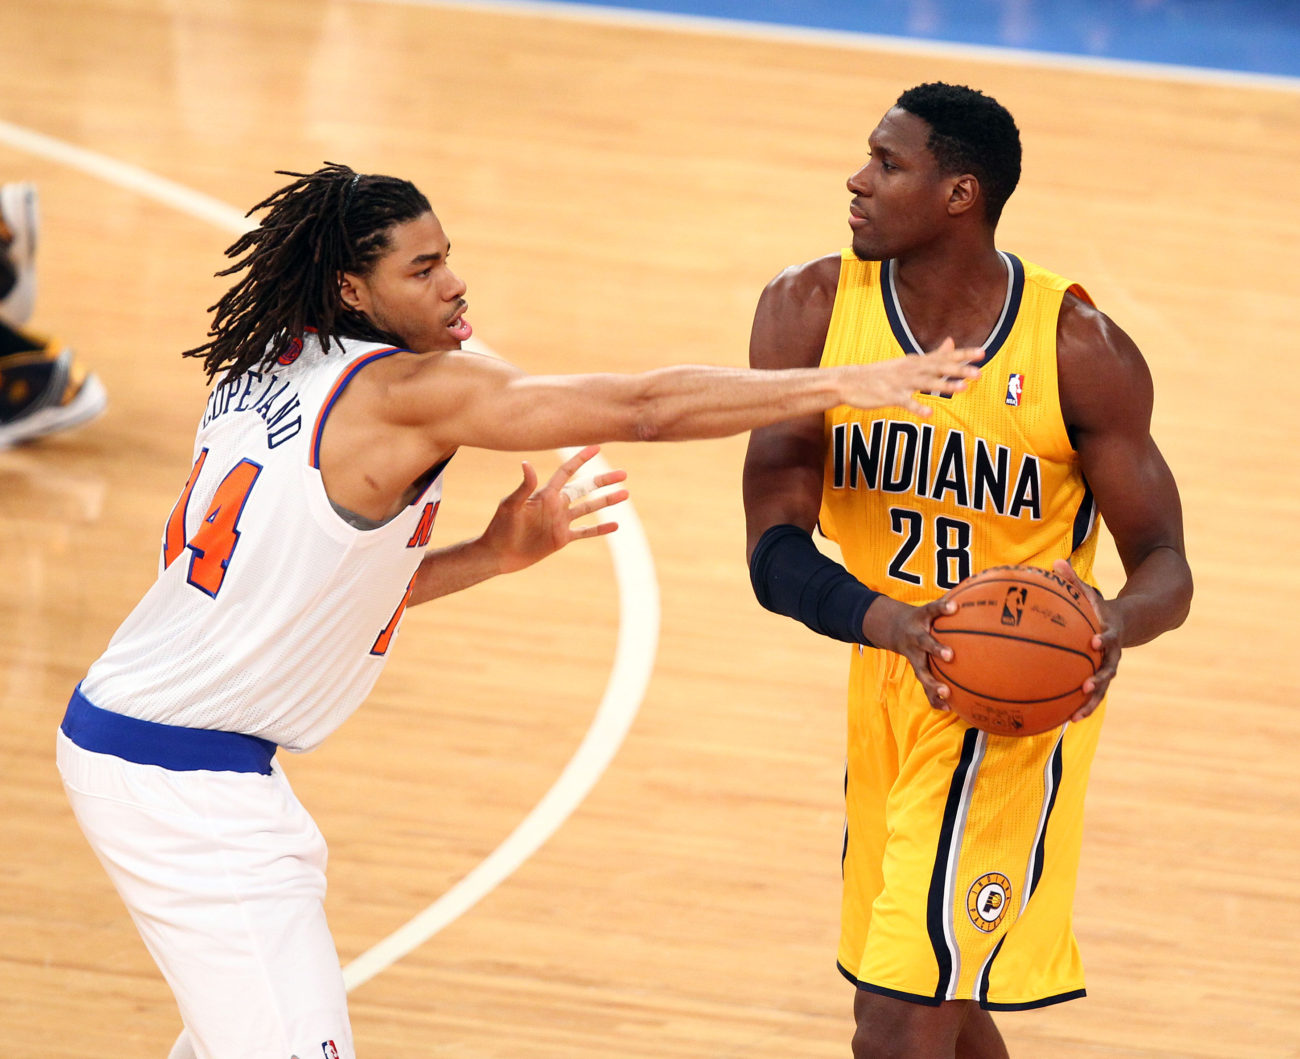 May 5, 2013; New York, NY, USA; Indiana Pacers center Ian Mahinmi (28) is defended by New York Knicks forward Chris Copeland (14) at Madison Square Garden. Mandatory Credit: Danny Wild-USA TODAY Sports